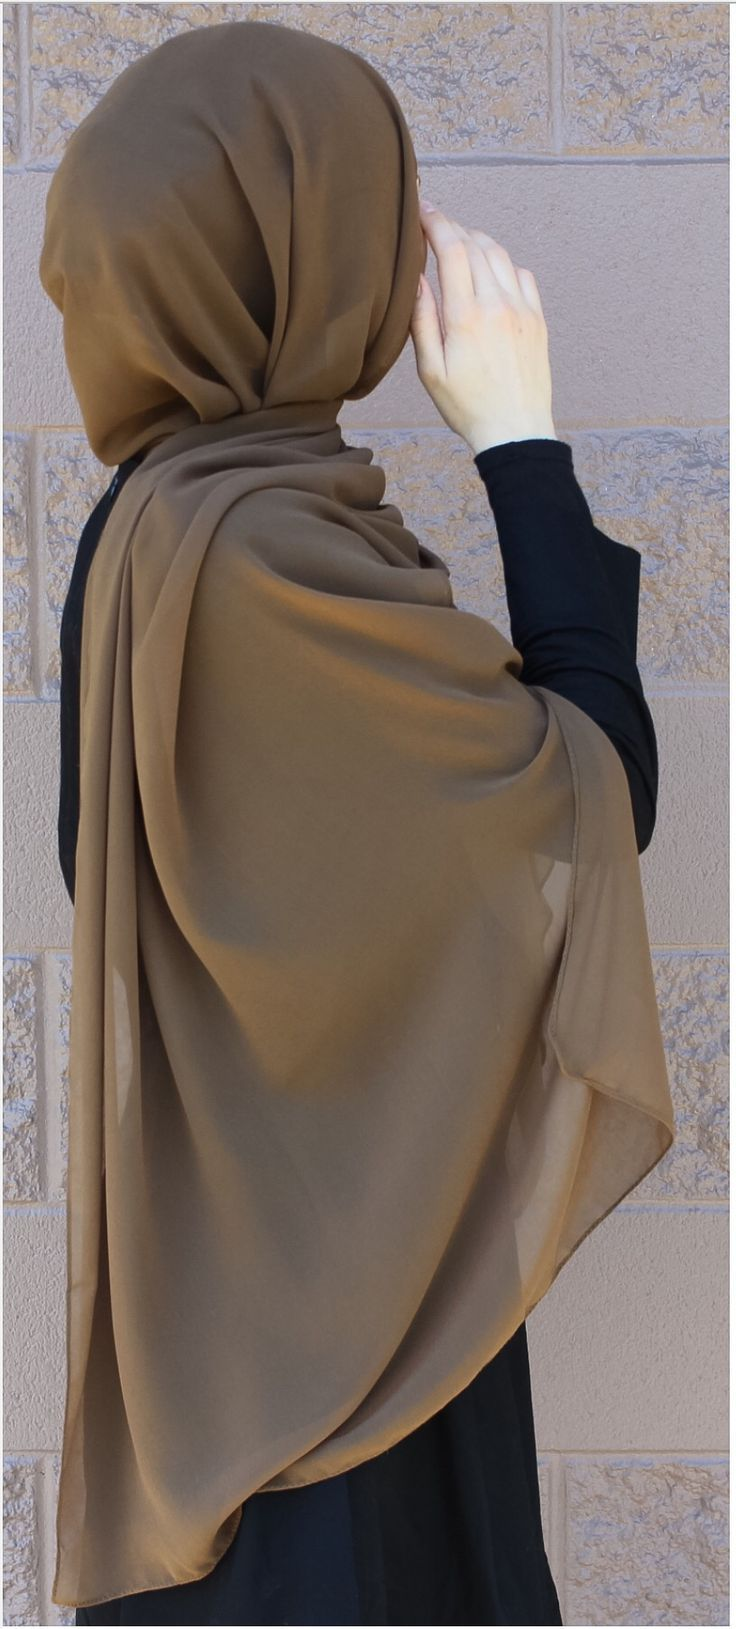 Hijab Fashion 2016/2017: Luxurious chiffon hijab from www.thehijabcity.com. FREE US shipping  Hijab Fashion 2016/2017: Sélection de looks tendances spécial voilées Look Descreption Luxurious chiffon hijab from www.thehijabcity.com. FREE US shipping